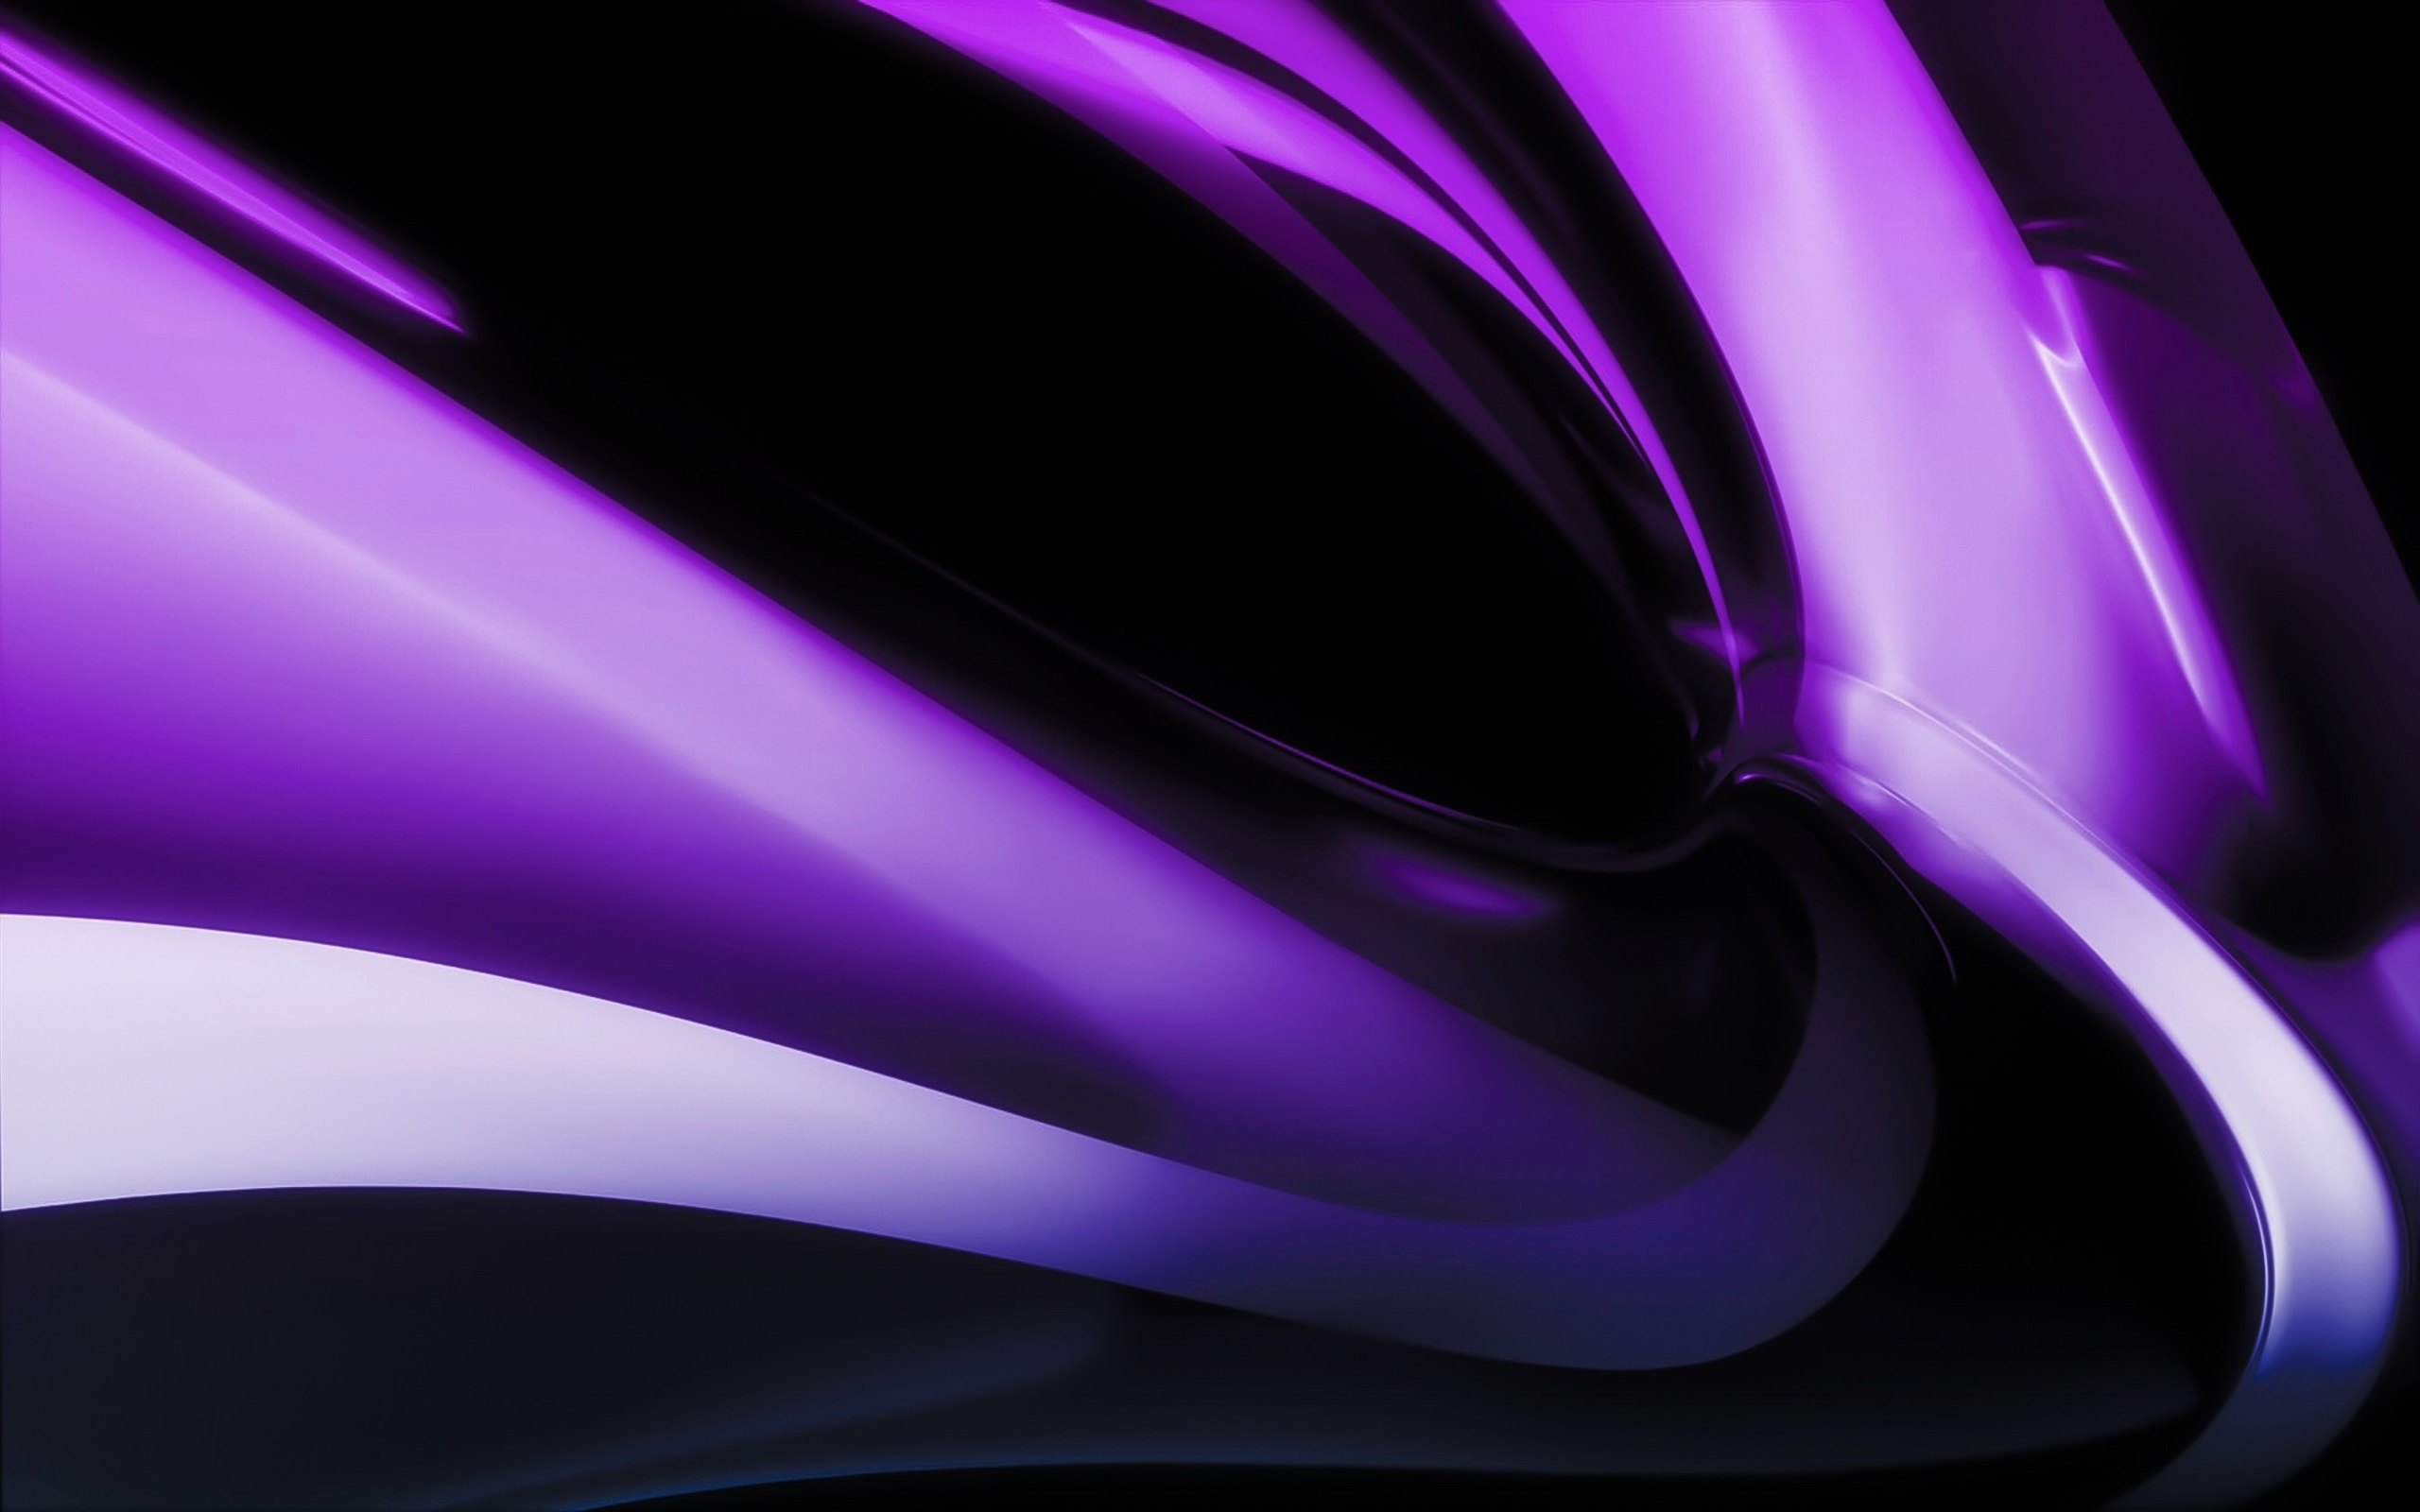 MacBook Pro 16 inspired wallpaper ar72014 desktop purple